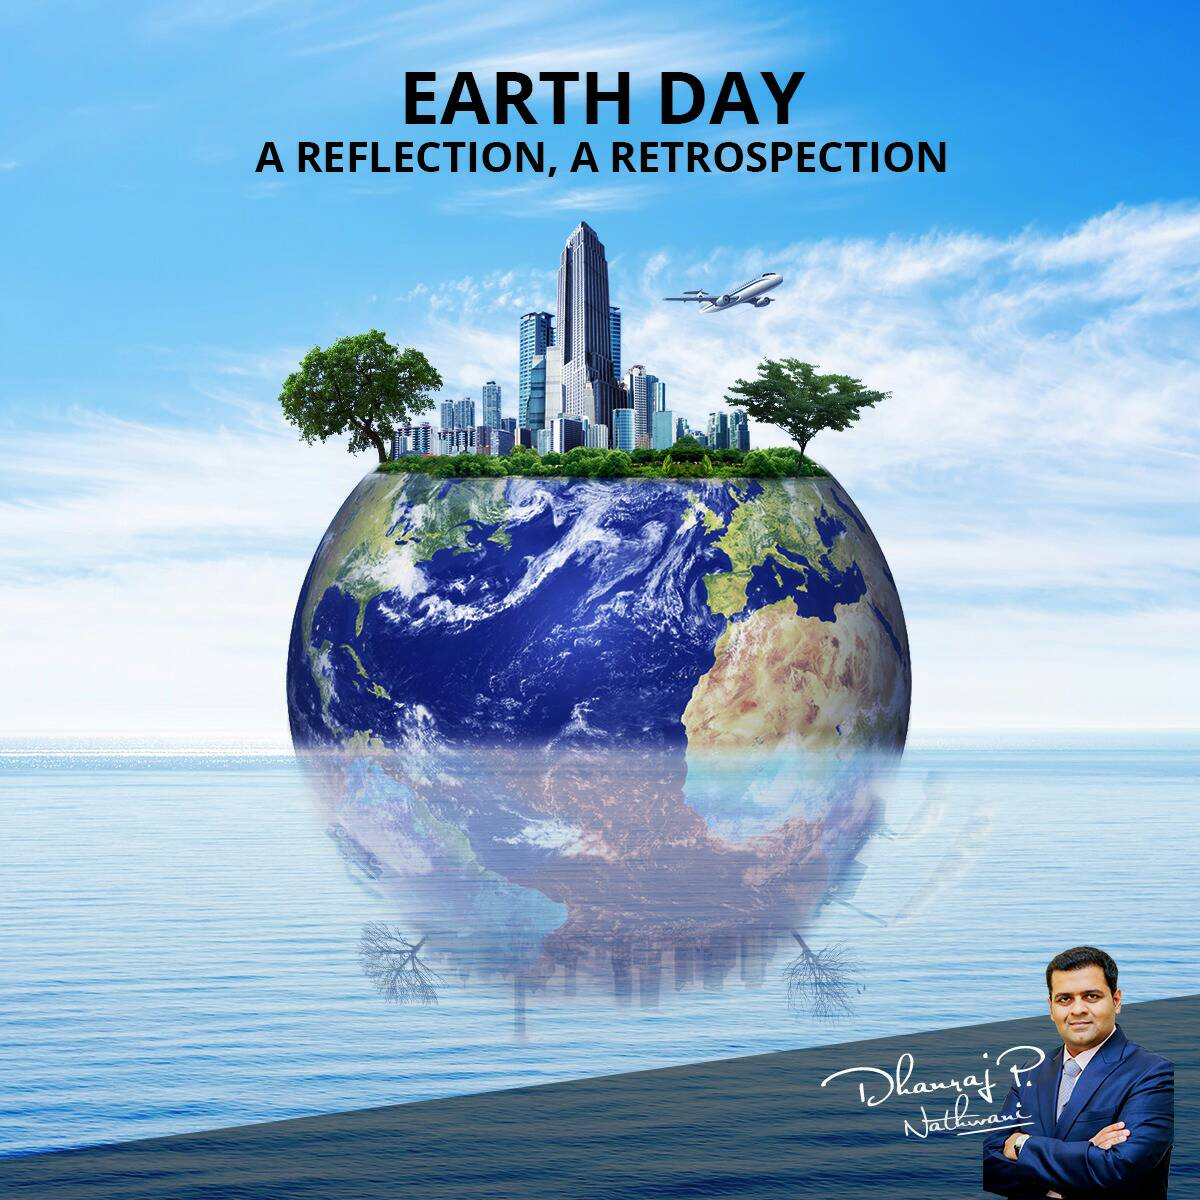 For us earth is mother so let&#39;s educate the community on #environment  &amp; #climate  &amp; spread the message to keep it #Green&amp;Clean #EarthDay <br>http://pic.twitter.com/SB7CgrB807